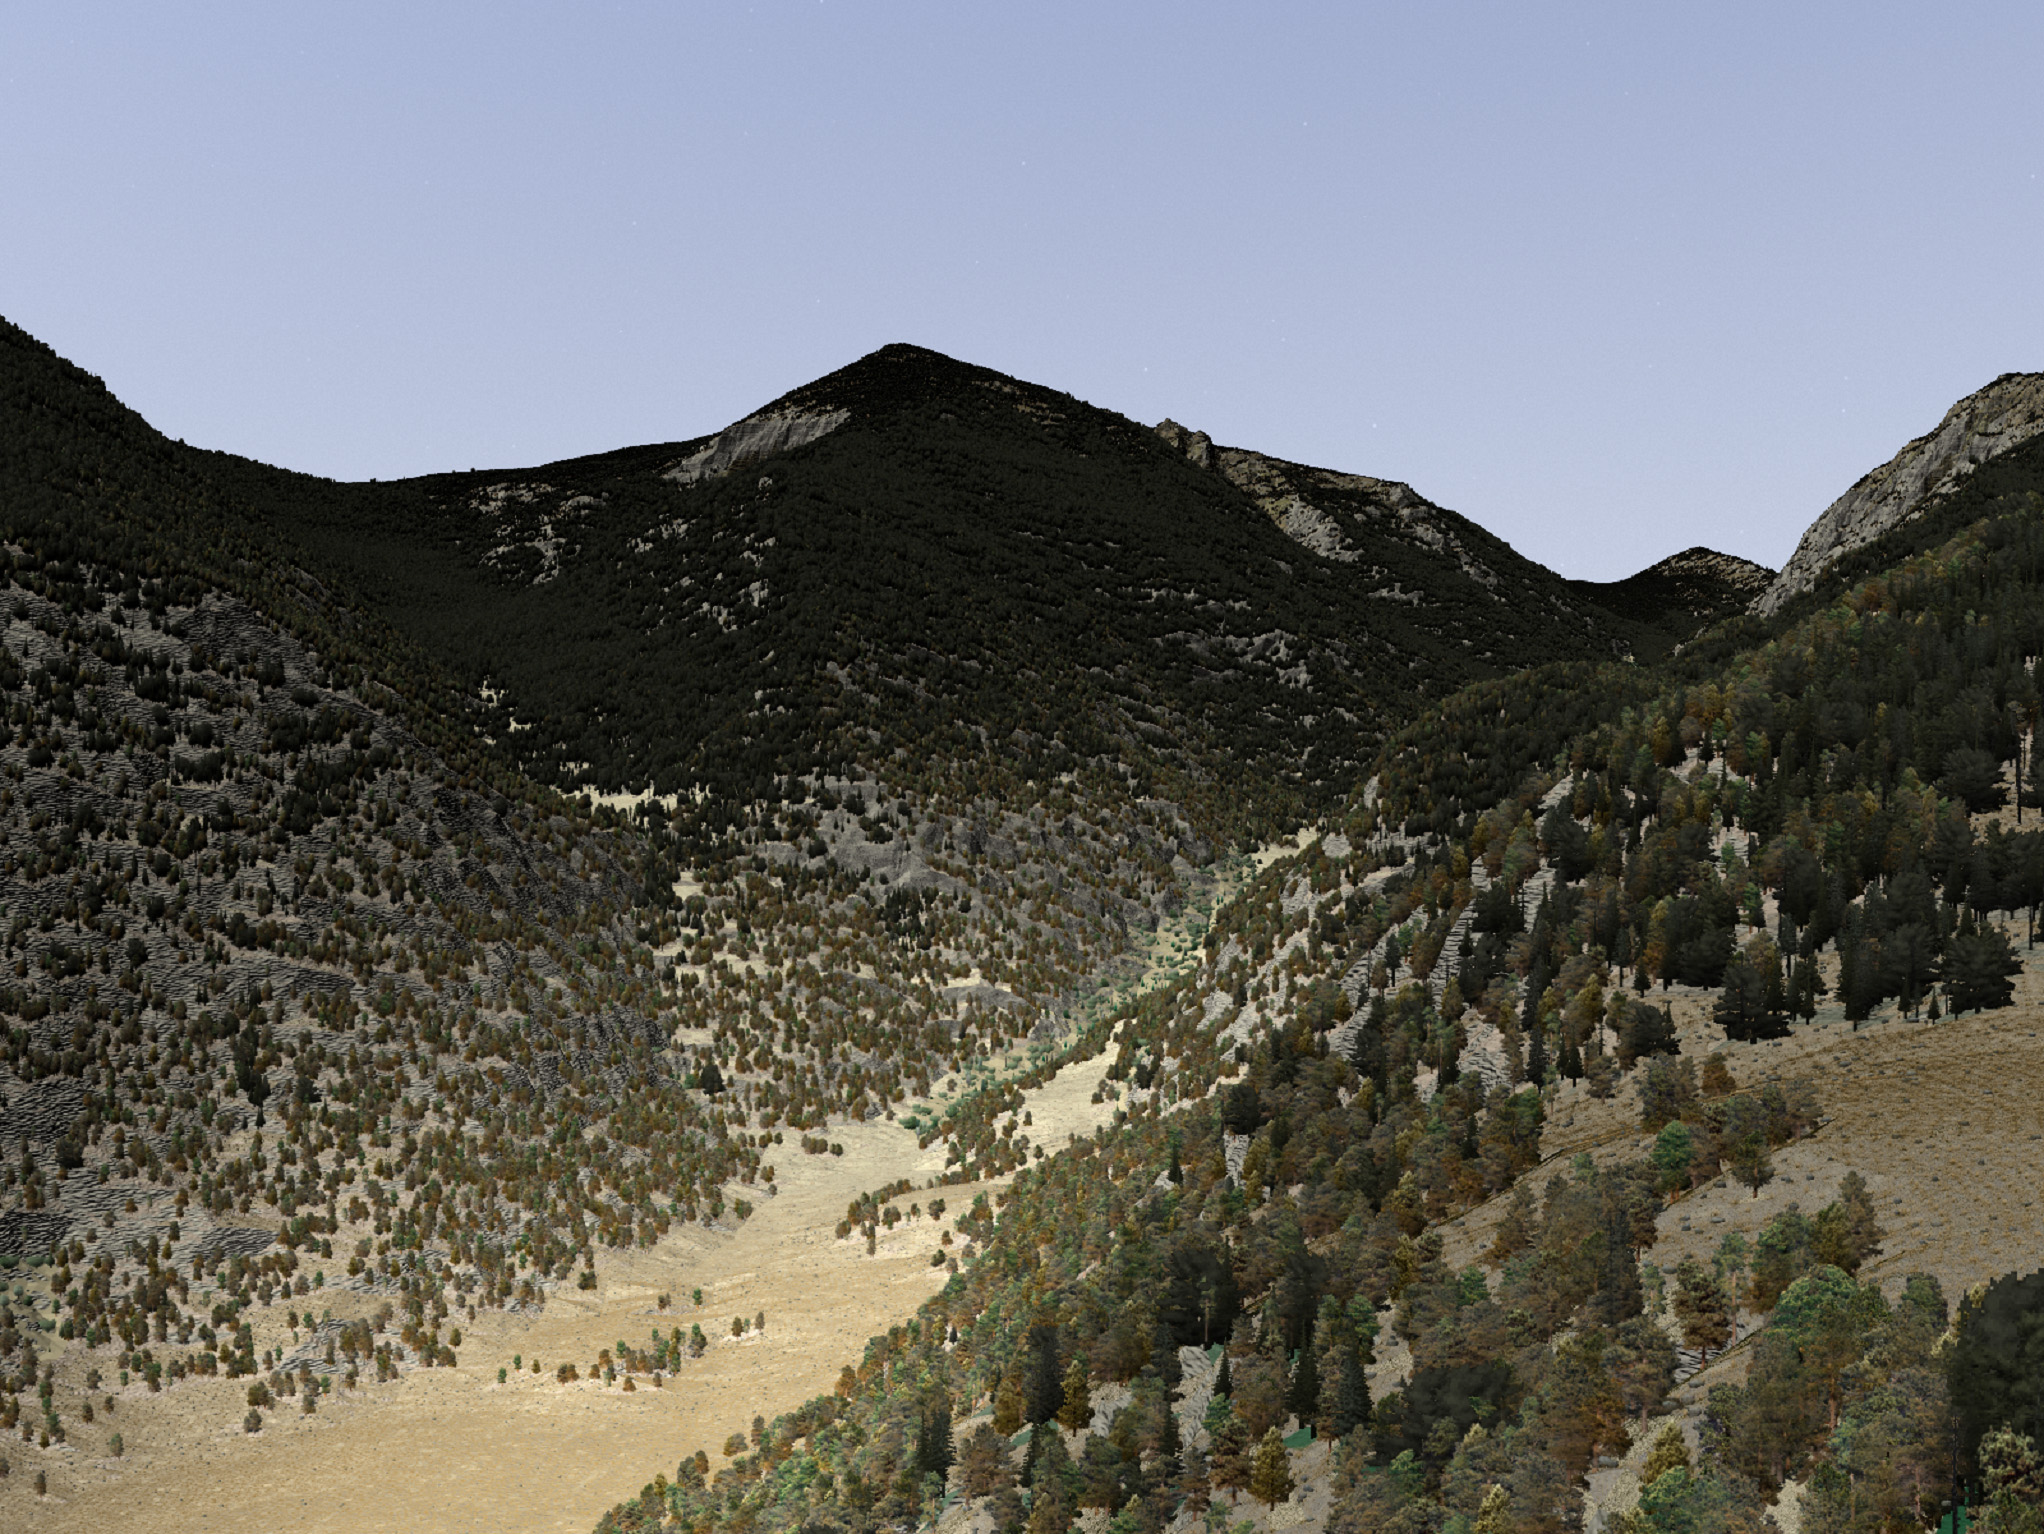 """... and here is yet another Camera perspective of the """"Horseshoe Park"""", Colorado 3D environmental model in VNS ..."""